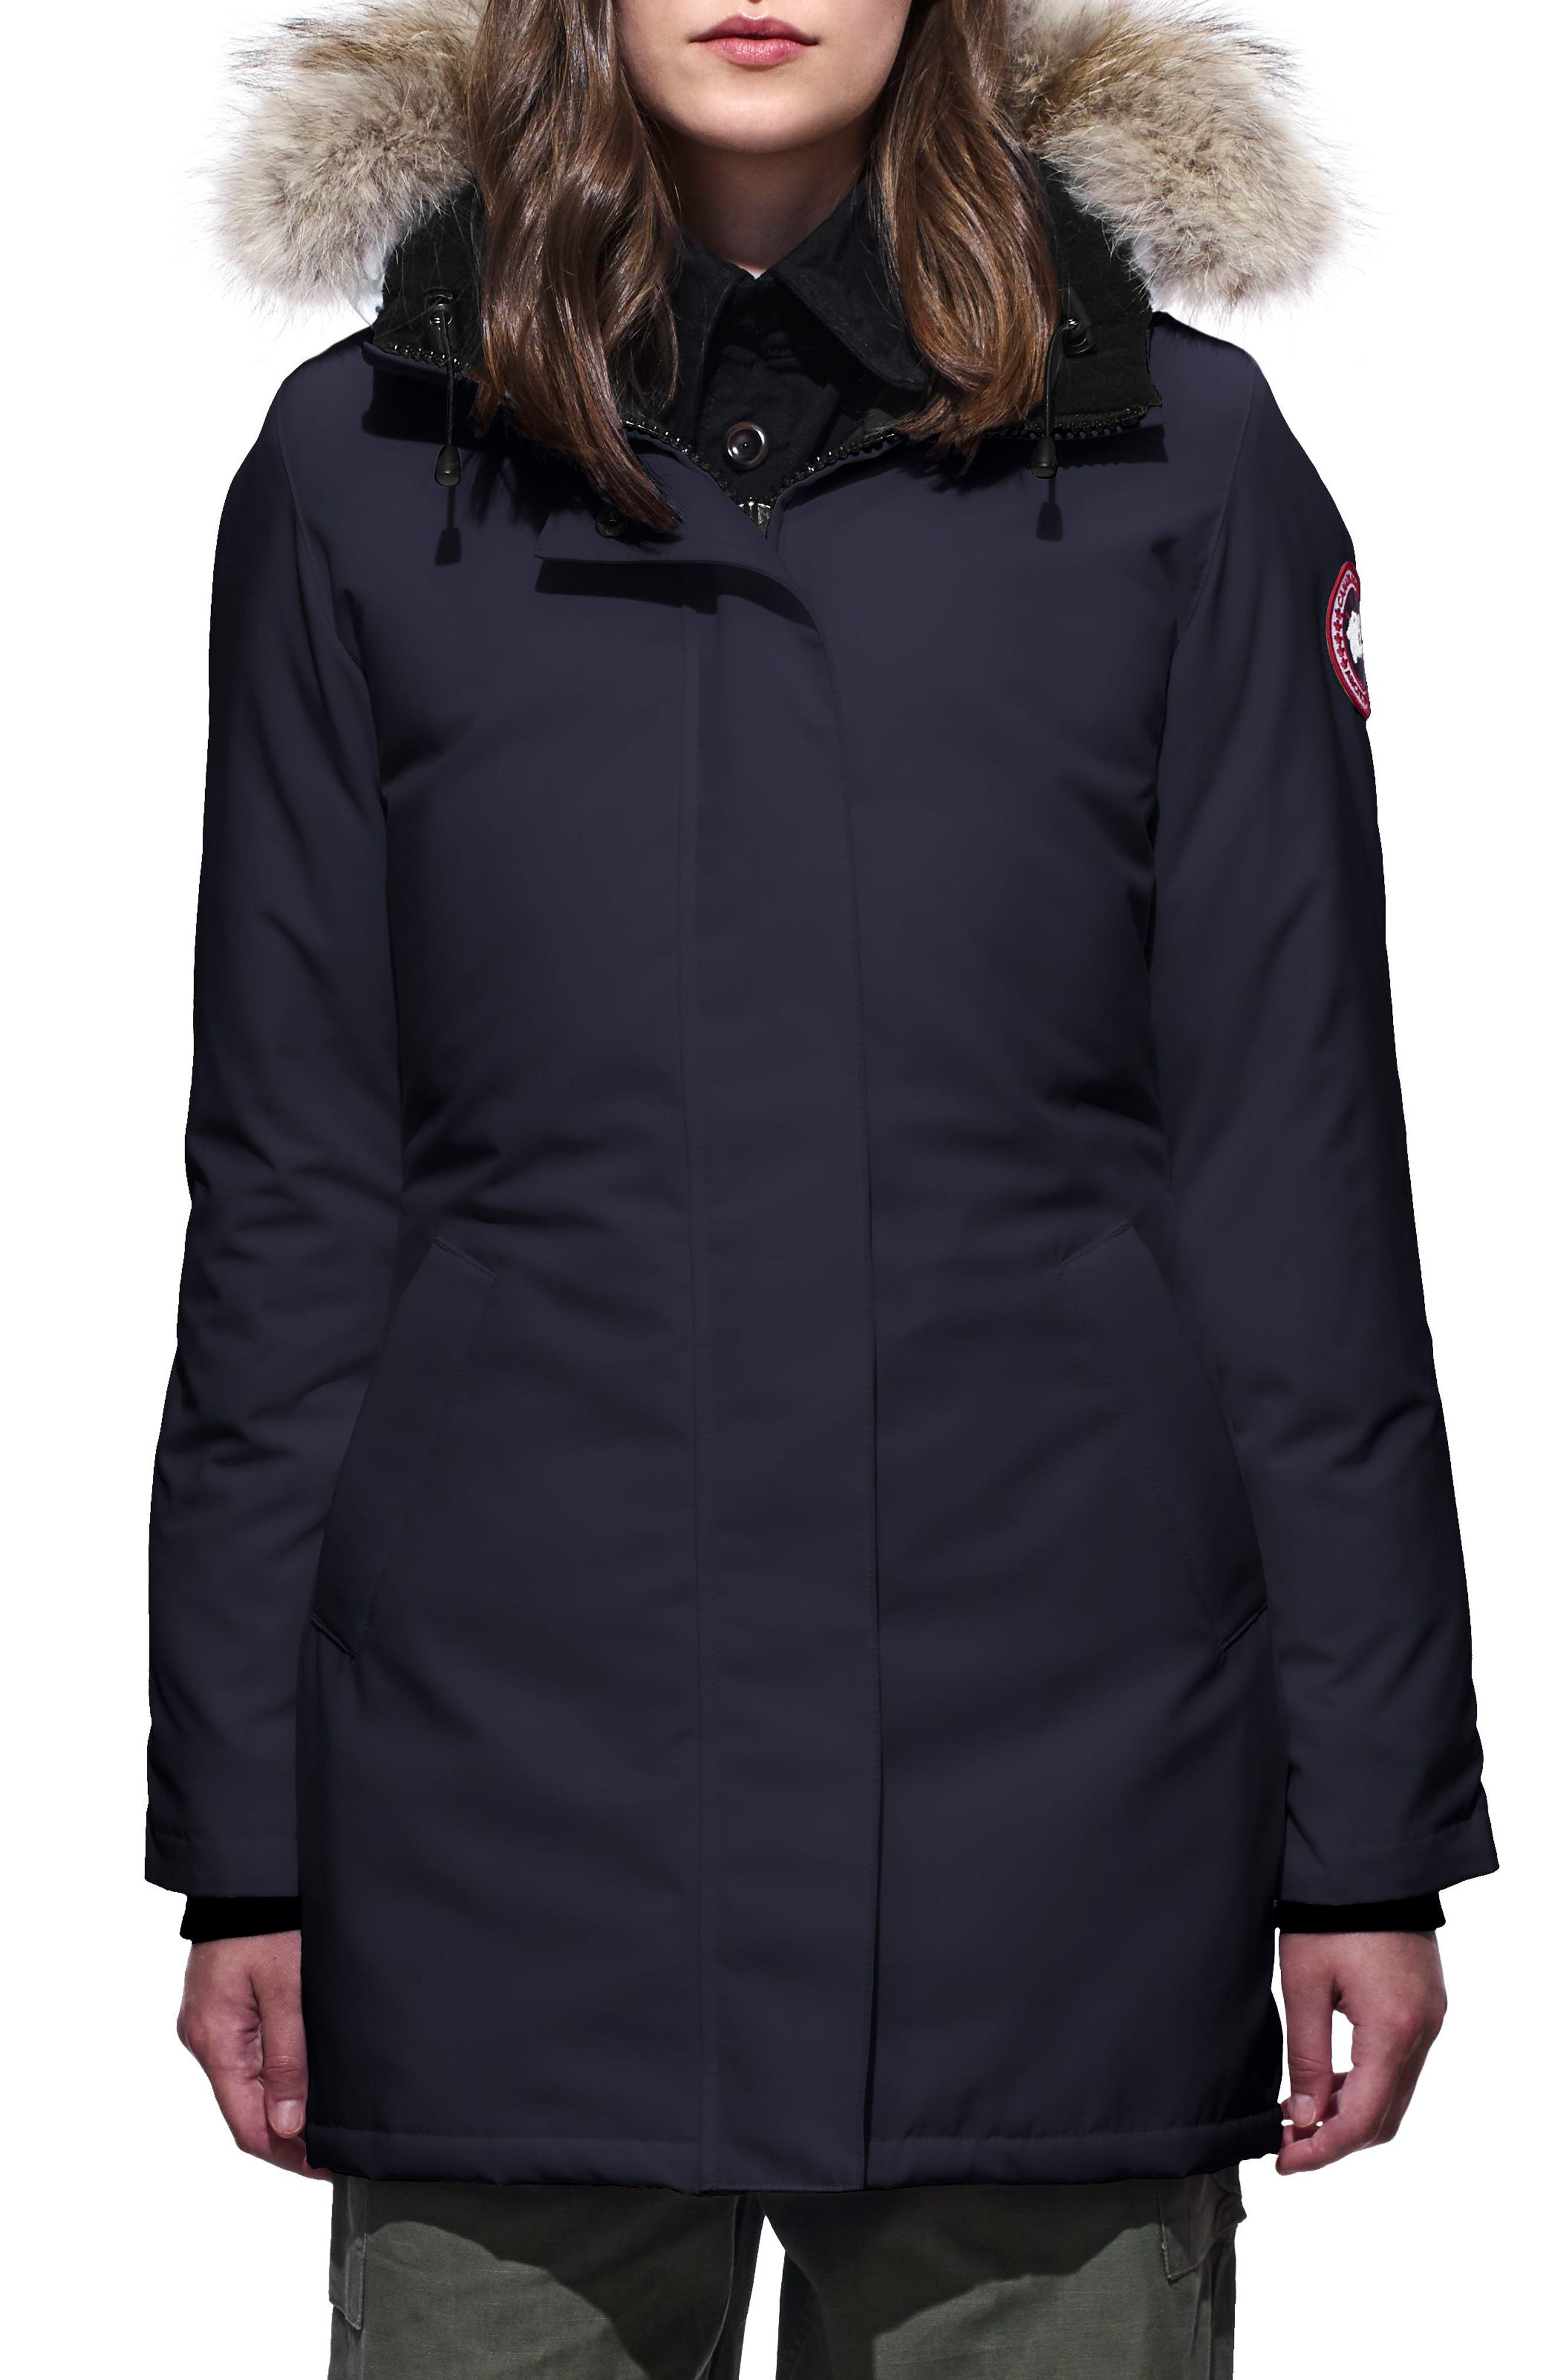 CANADA GOOSE, Victoria Down Parka with Genuine Coyote Fur Trim, Main thumbnail 1, color, ADMIRAL BLUE